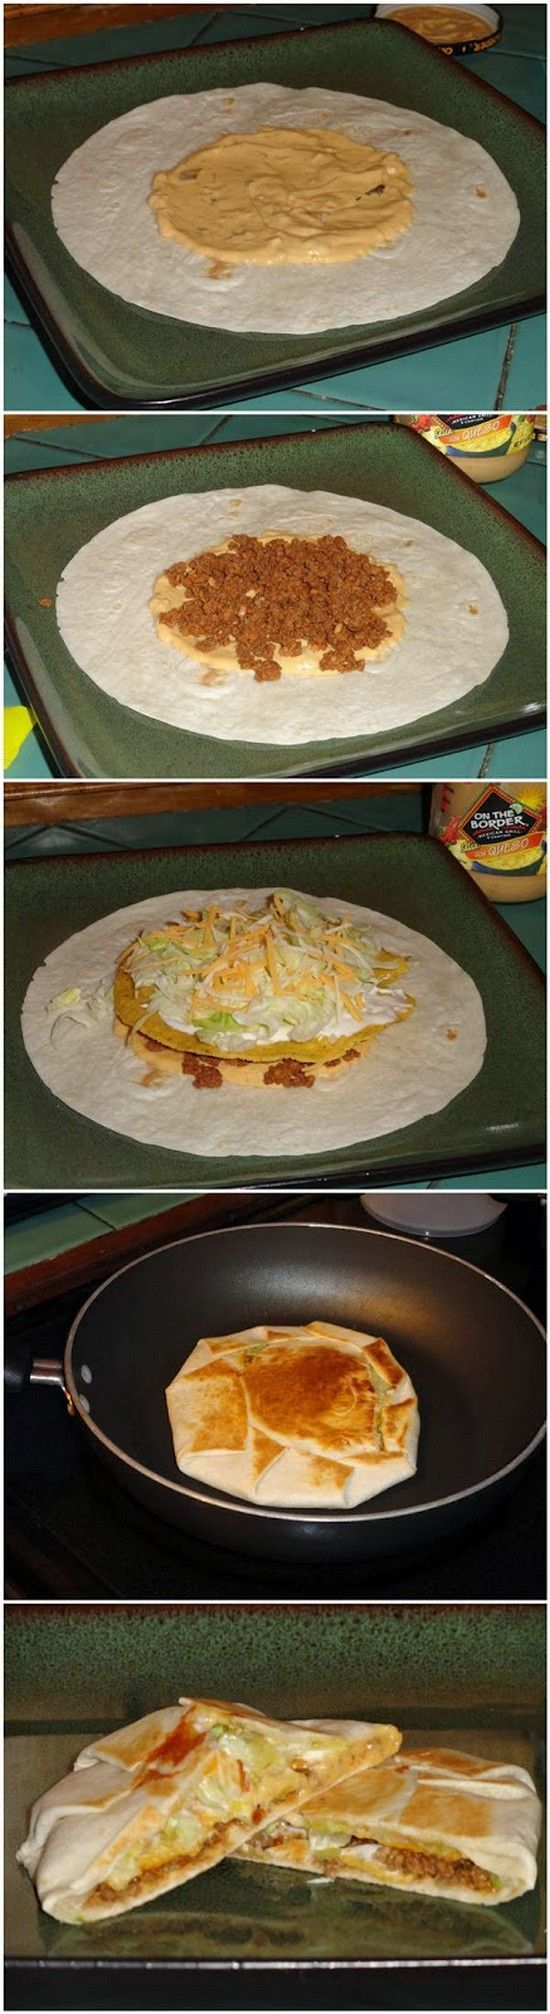 Yummy Crunchwrap Supremes. These are so quick and easy to make! Food Ideas, Easy Food Ideas #food #recipe